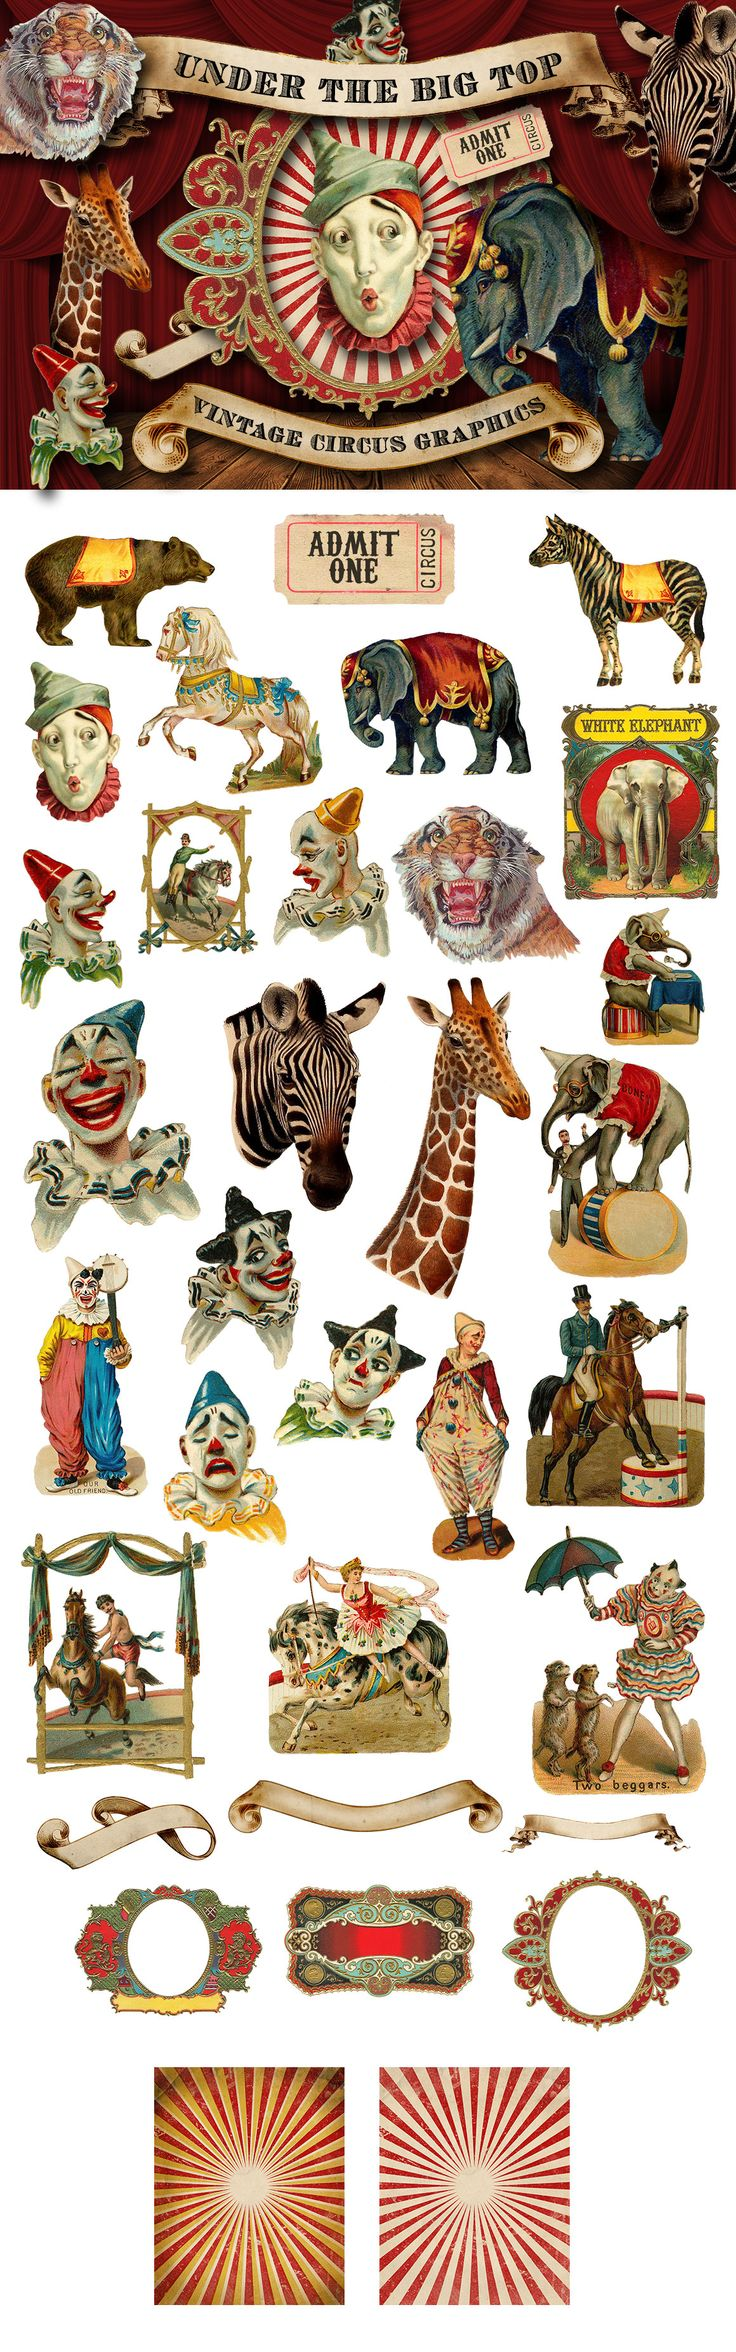 Vintage Circus Graphics by Eclectic Anthology on @creativemarket